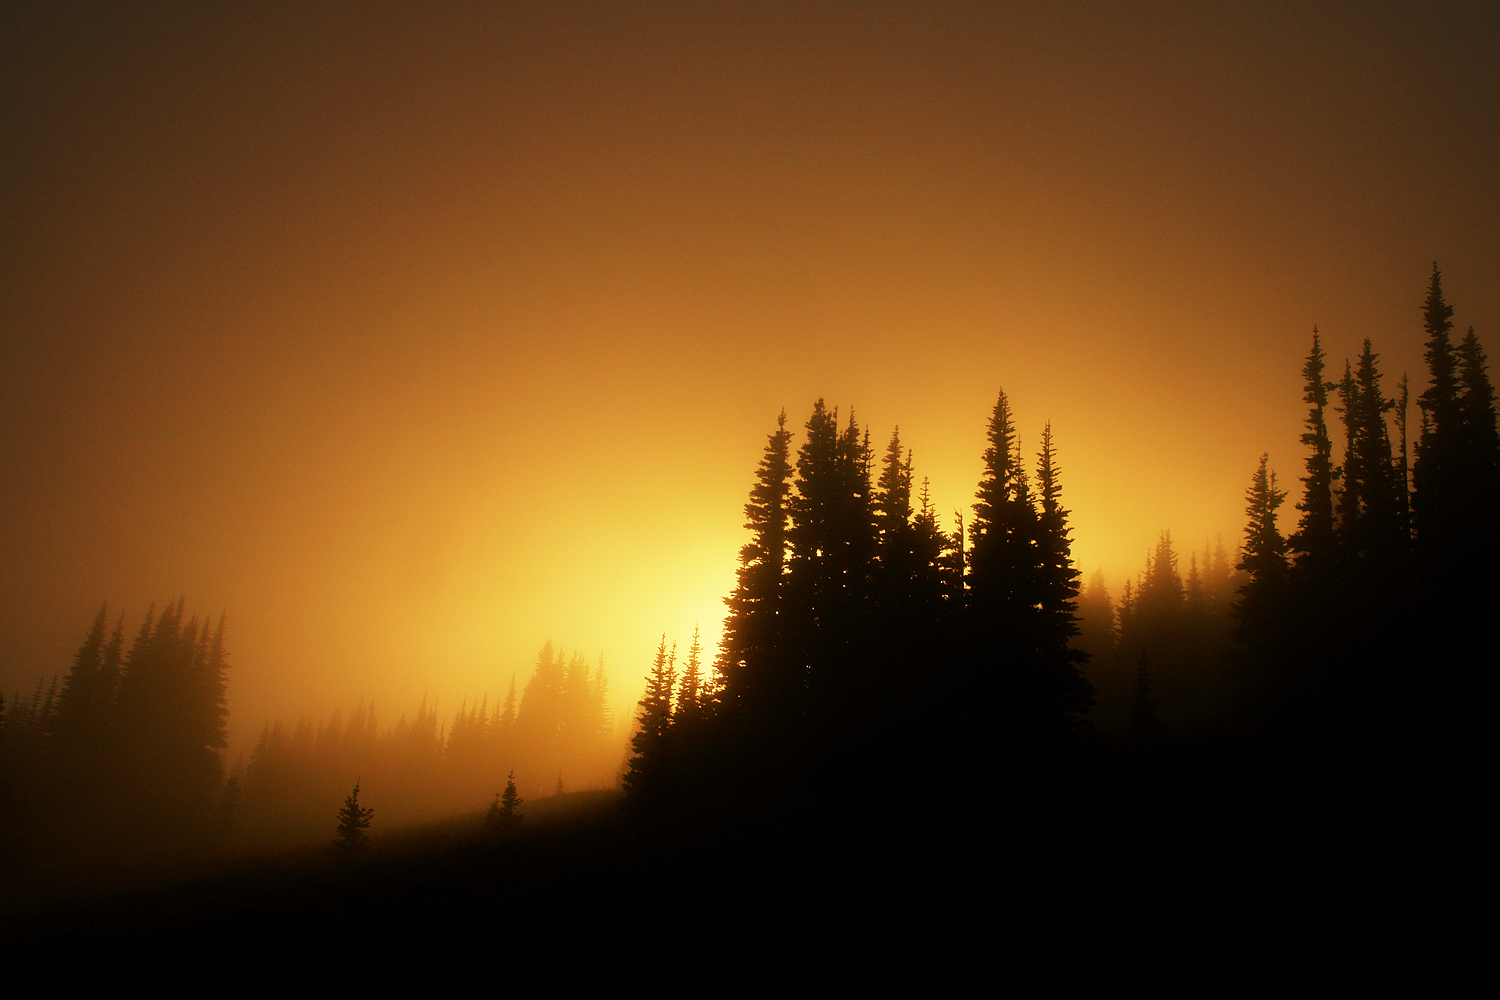 sunset forests silhouettes fog HD Wallpaper